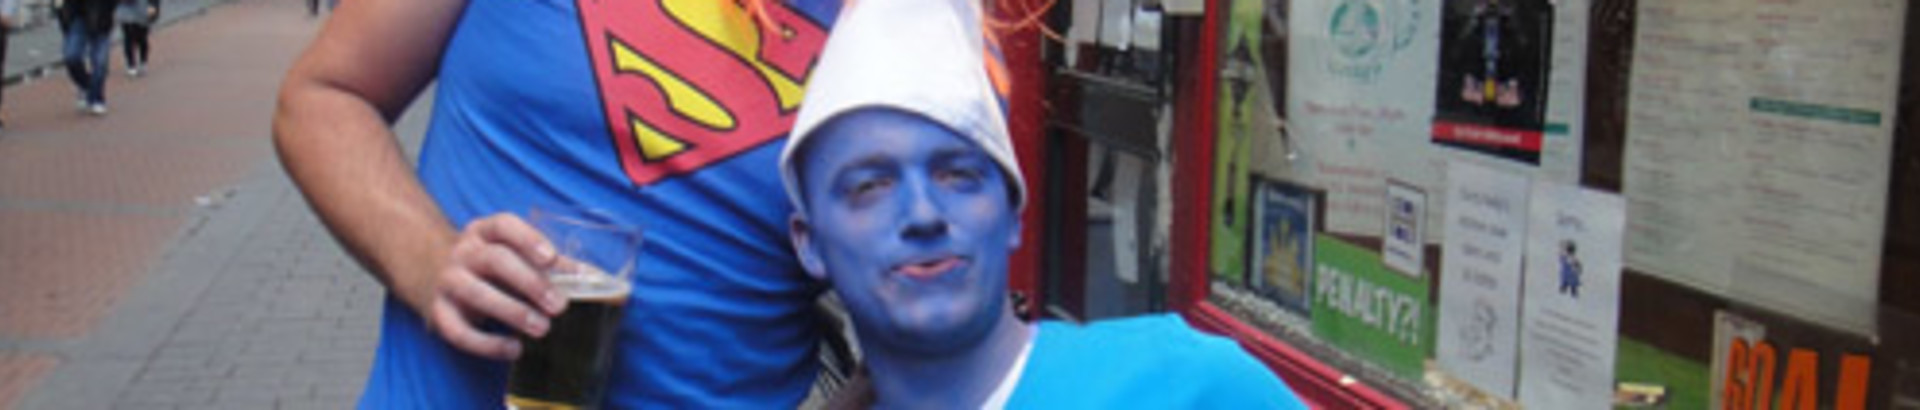 dutch_smurf_joke__image1